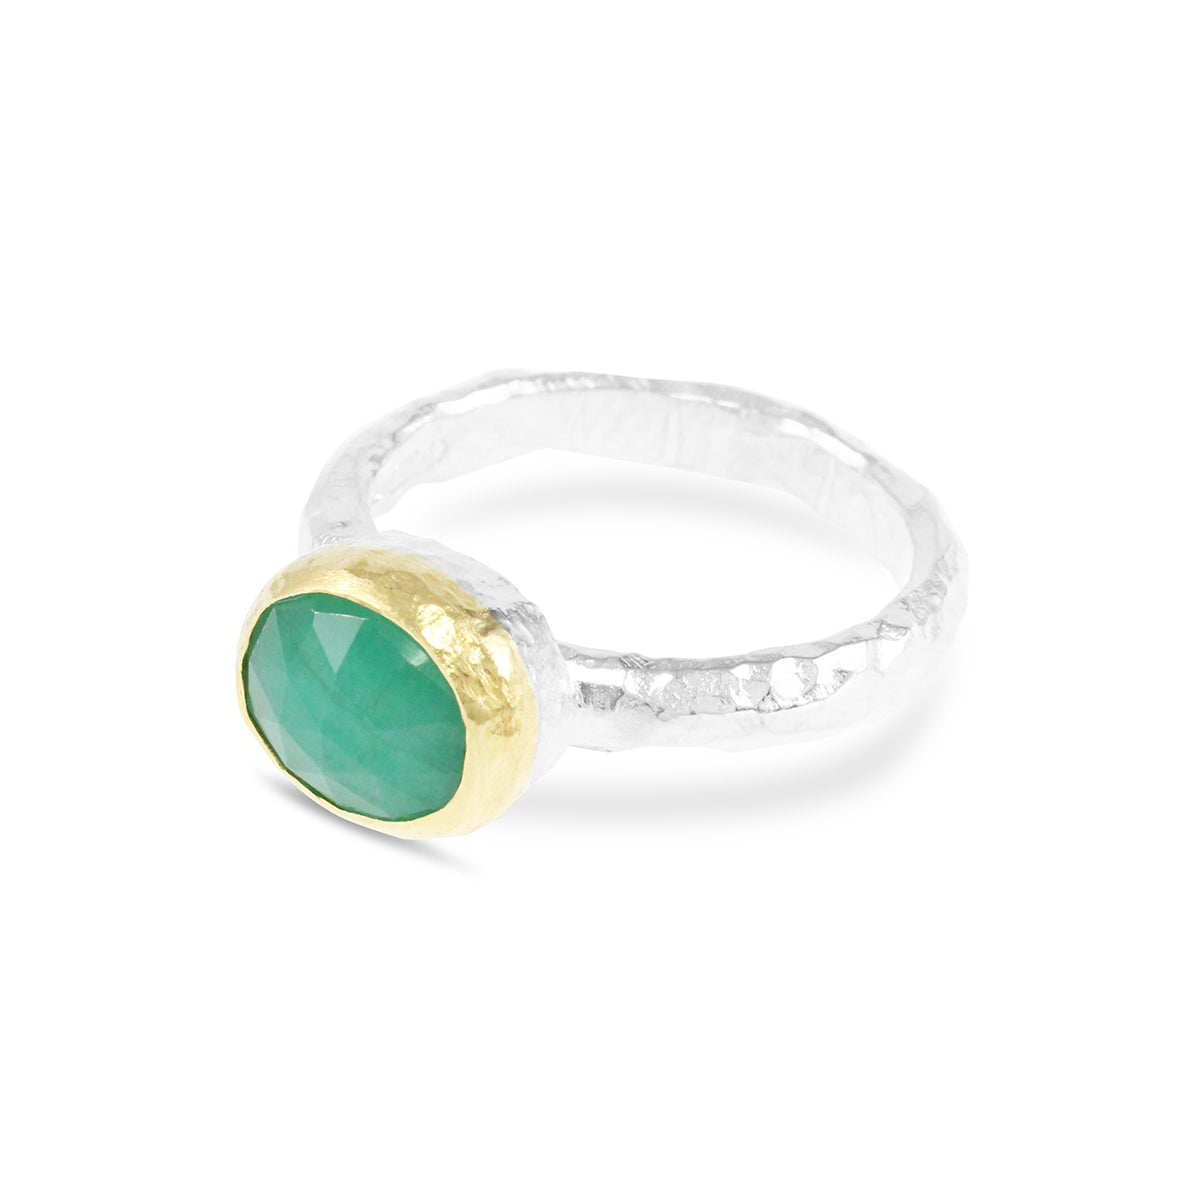 Vero ring in sterling silver with 18ct yellow gold setting containing an emerald